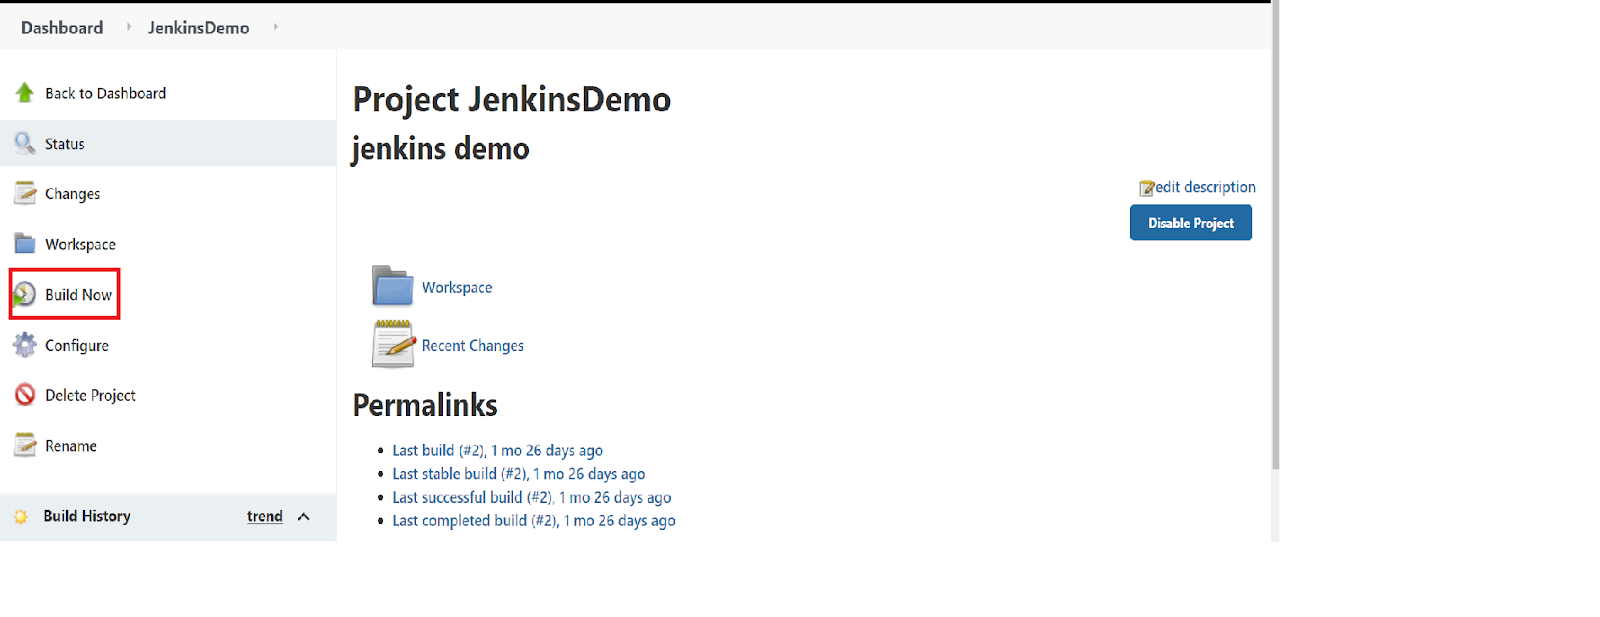 Jenkins project Demo